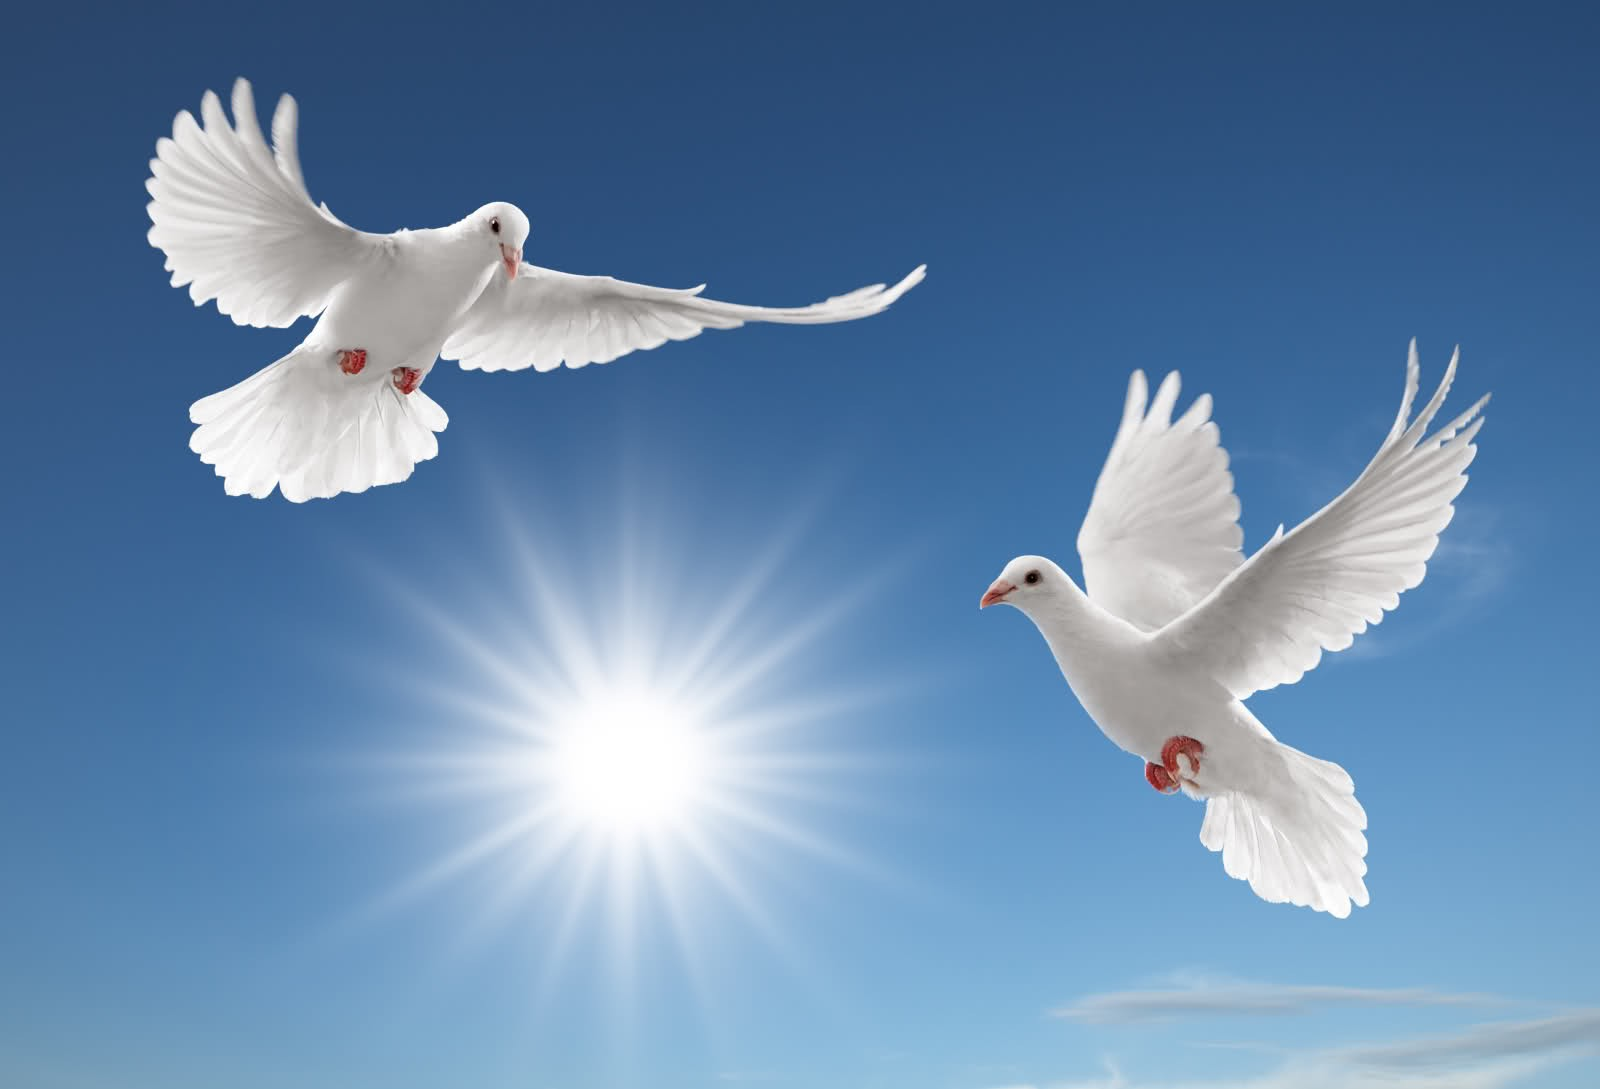 Very Nice Flying Pigeon Wallpapers